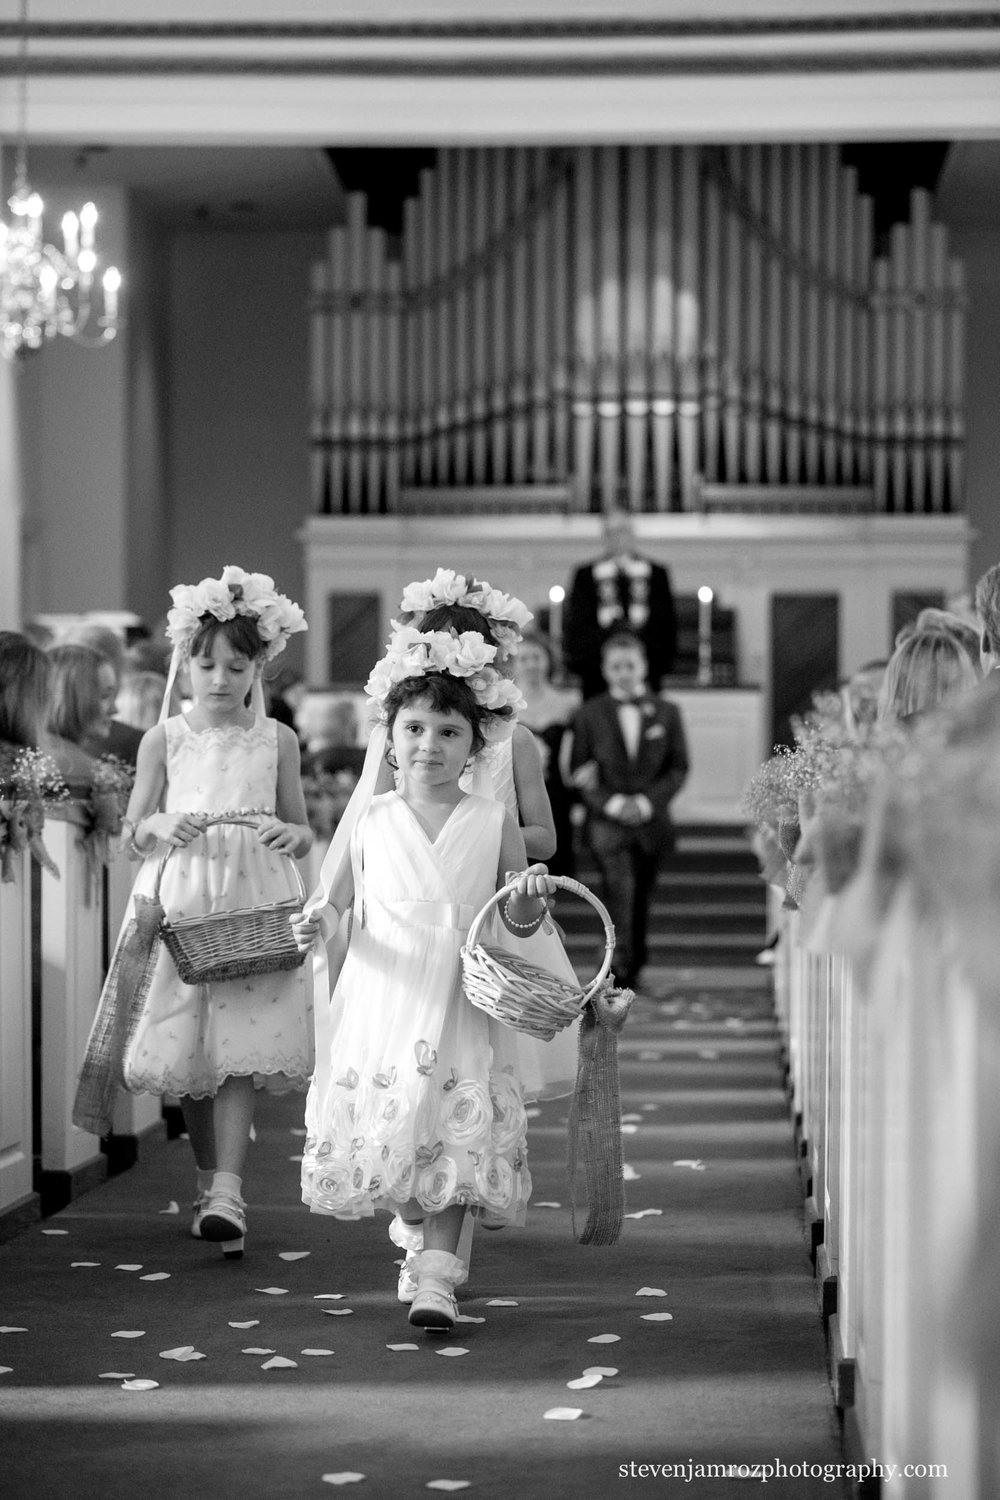 dinwiddie-chapel-wedding-raleigh-steven-jamroz-photography-0317.jpg